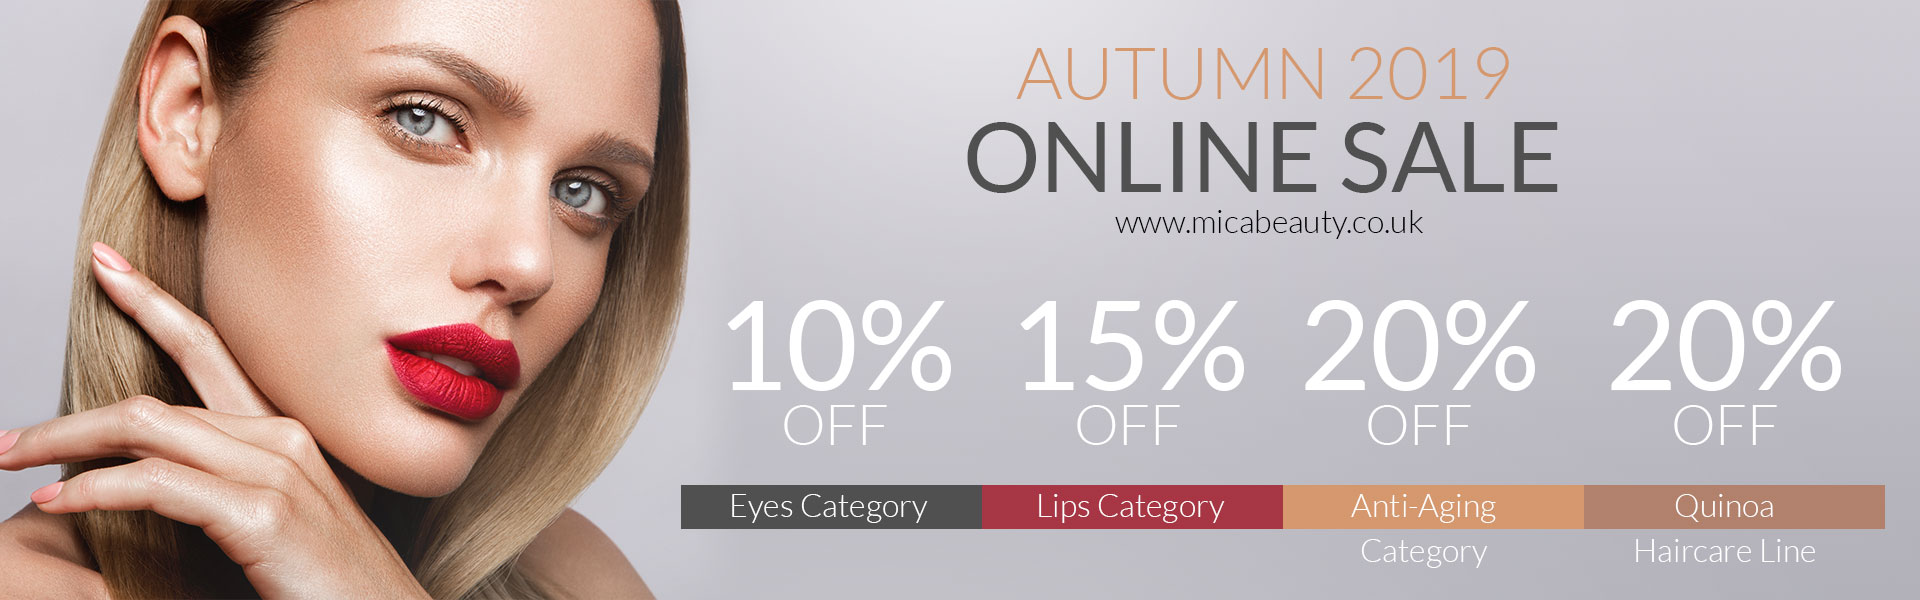 Autumn Sale on Micabeauty UK